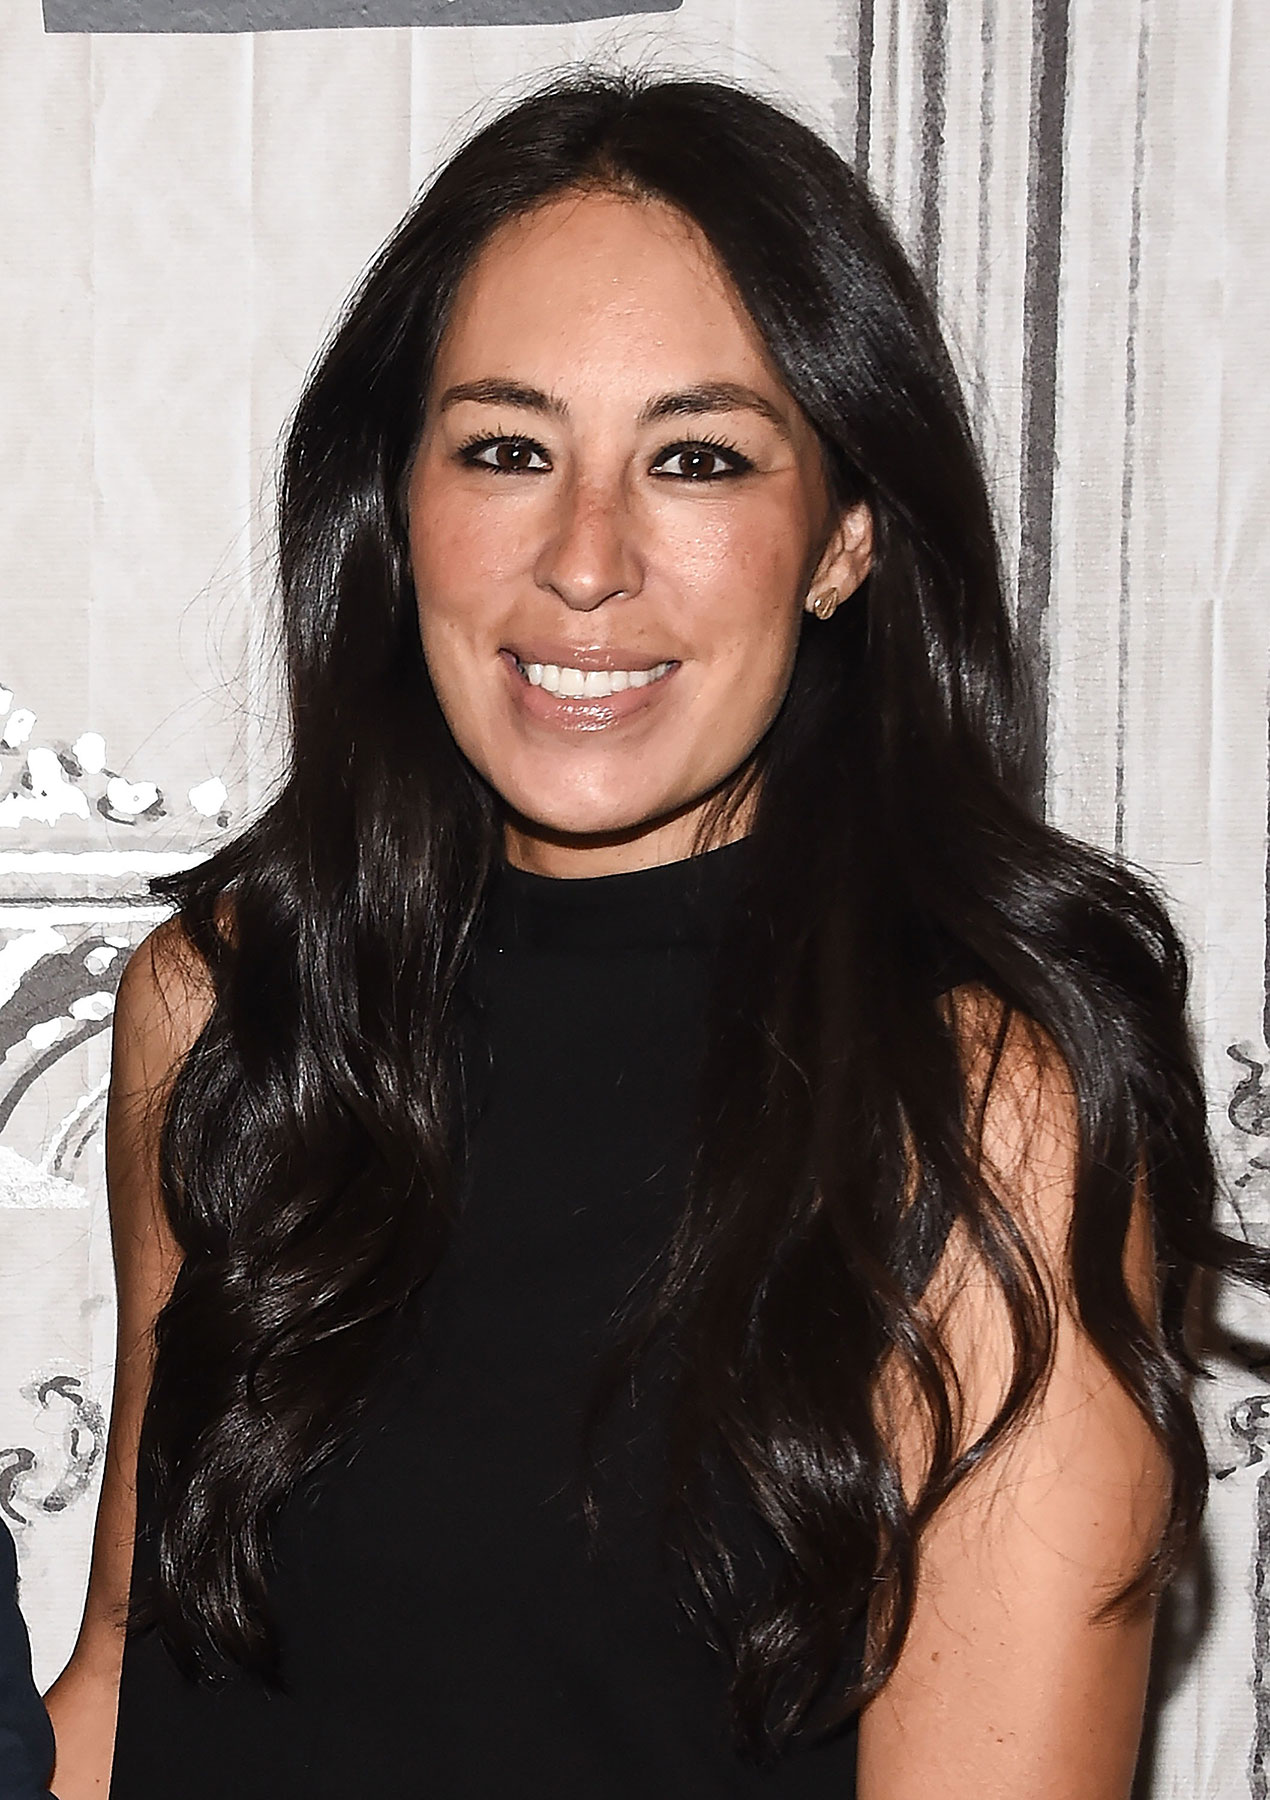 Joanna Gaines Uses These Drugstore Beauty Products